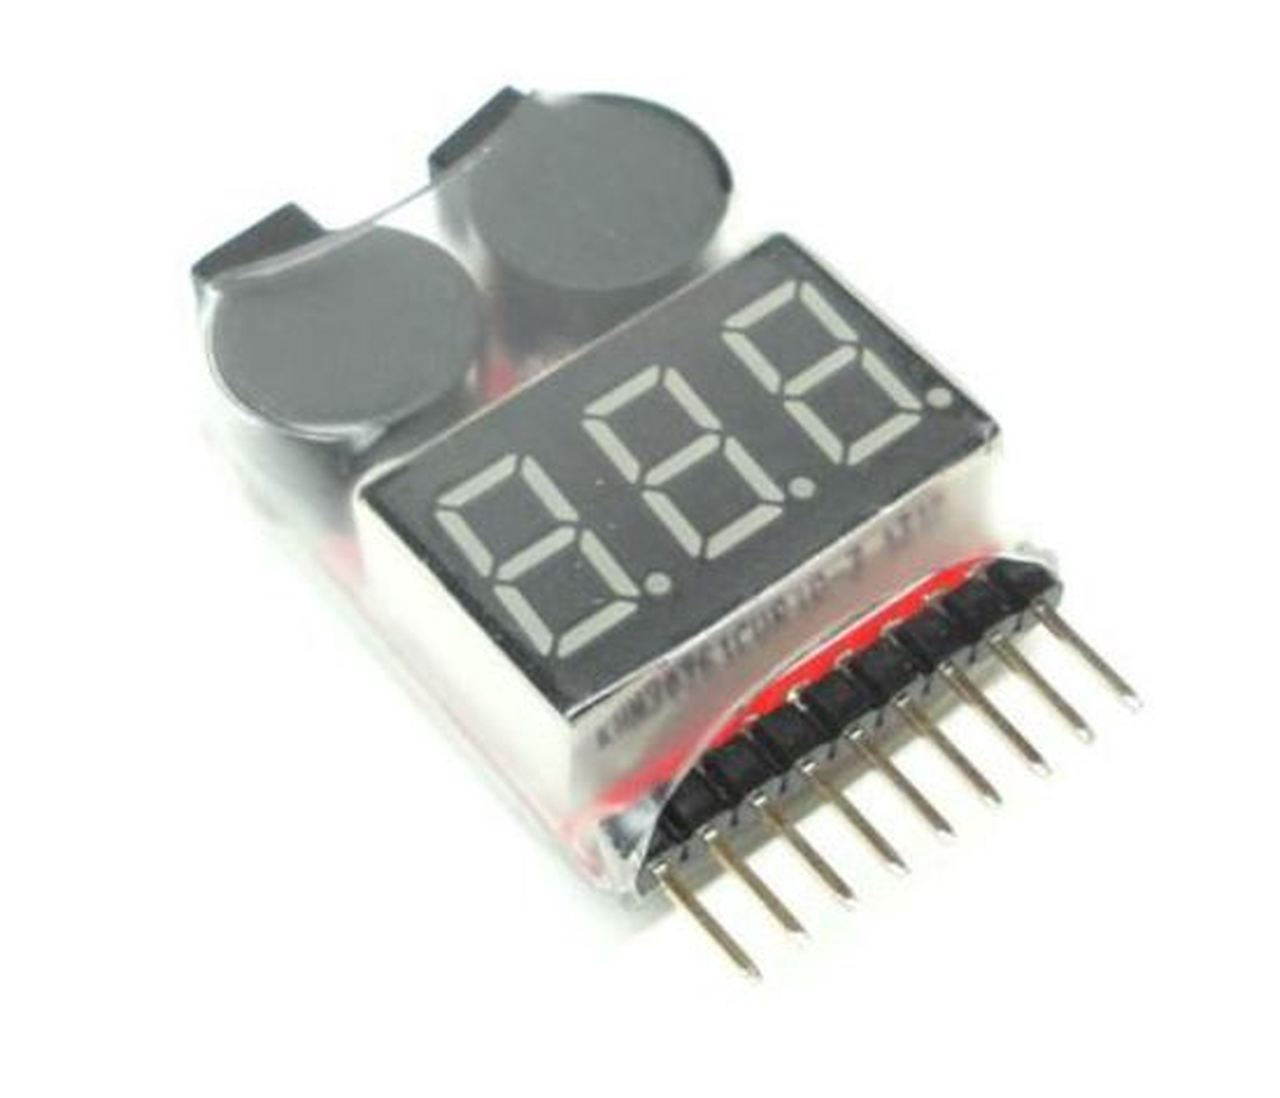 RC Pro #BM001 Lipo Battery Checker/Low Voltage Alarm